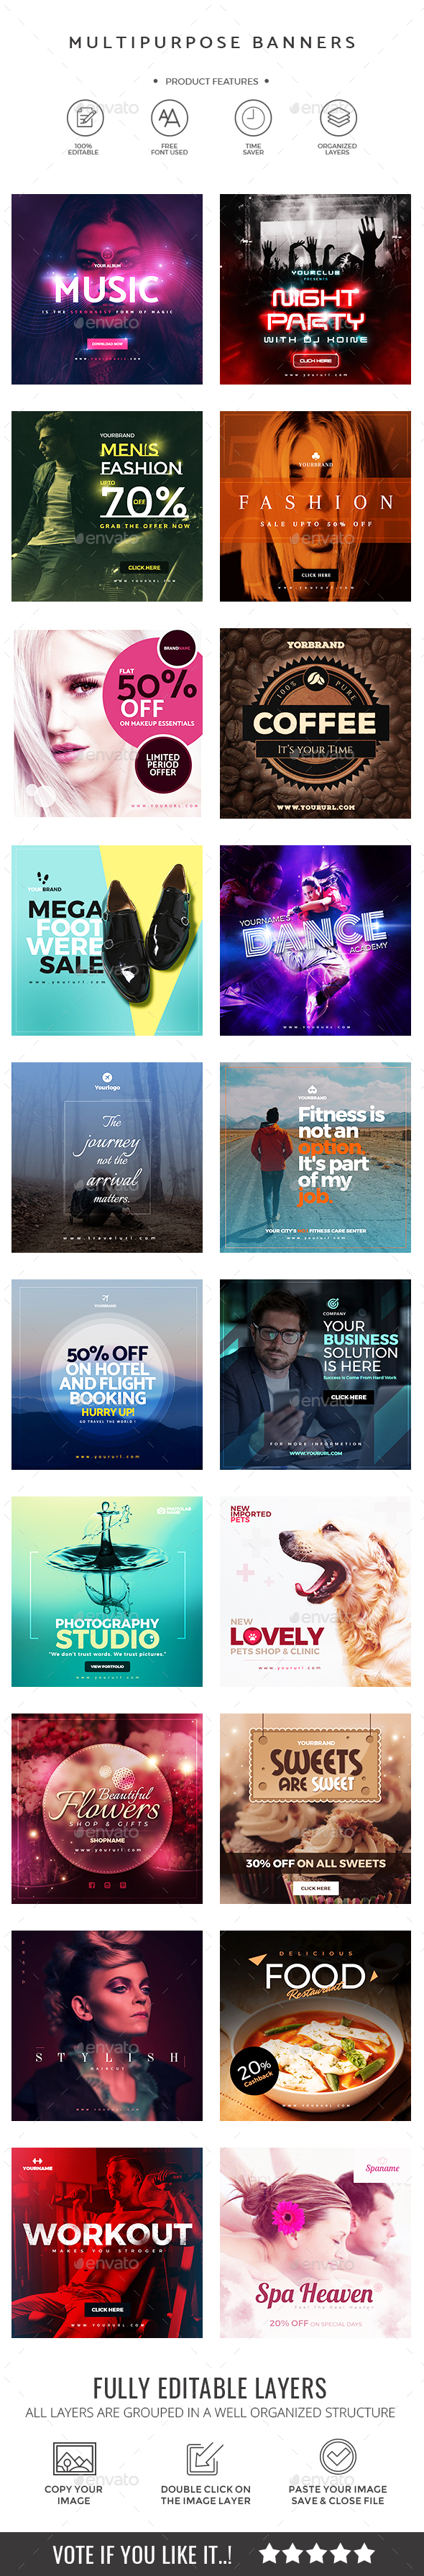 20 Multiperpose Instagram Banners - Social Media Web Elements